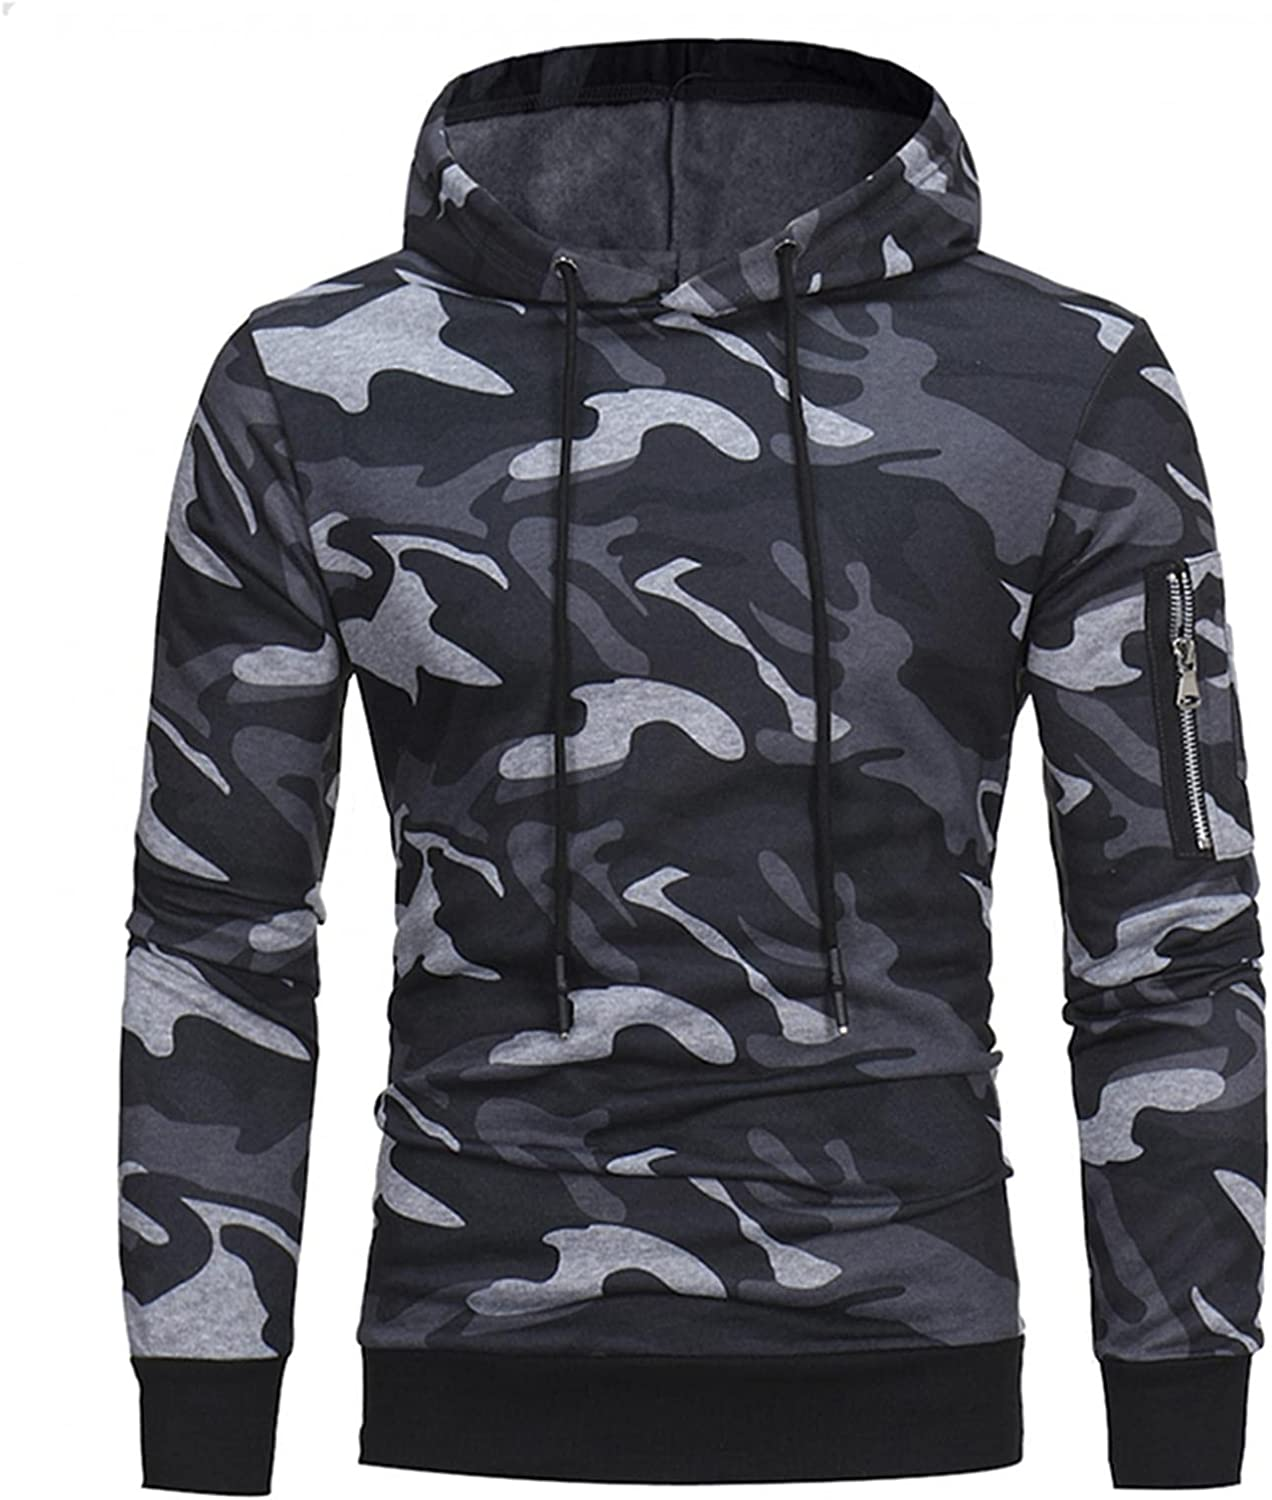 Men's Hoodie Camouflage Printed Popular Oakland Mall brand in the world Sleeve Long Athletic Sweatshirt